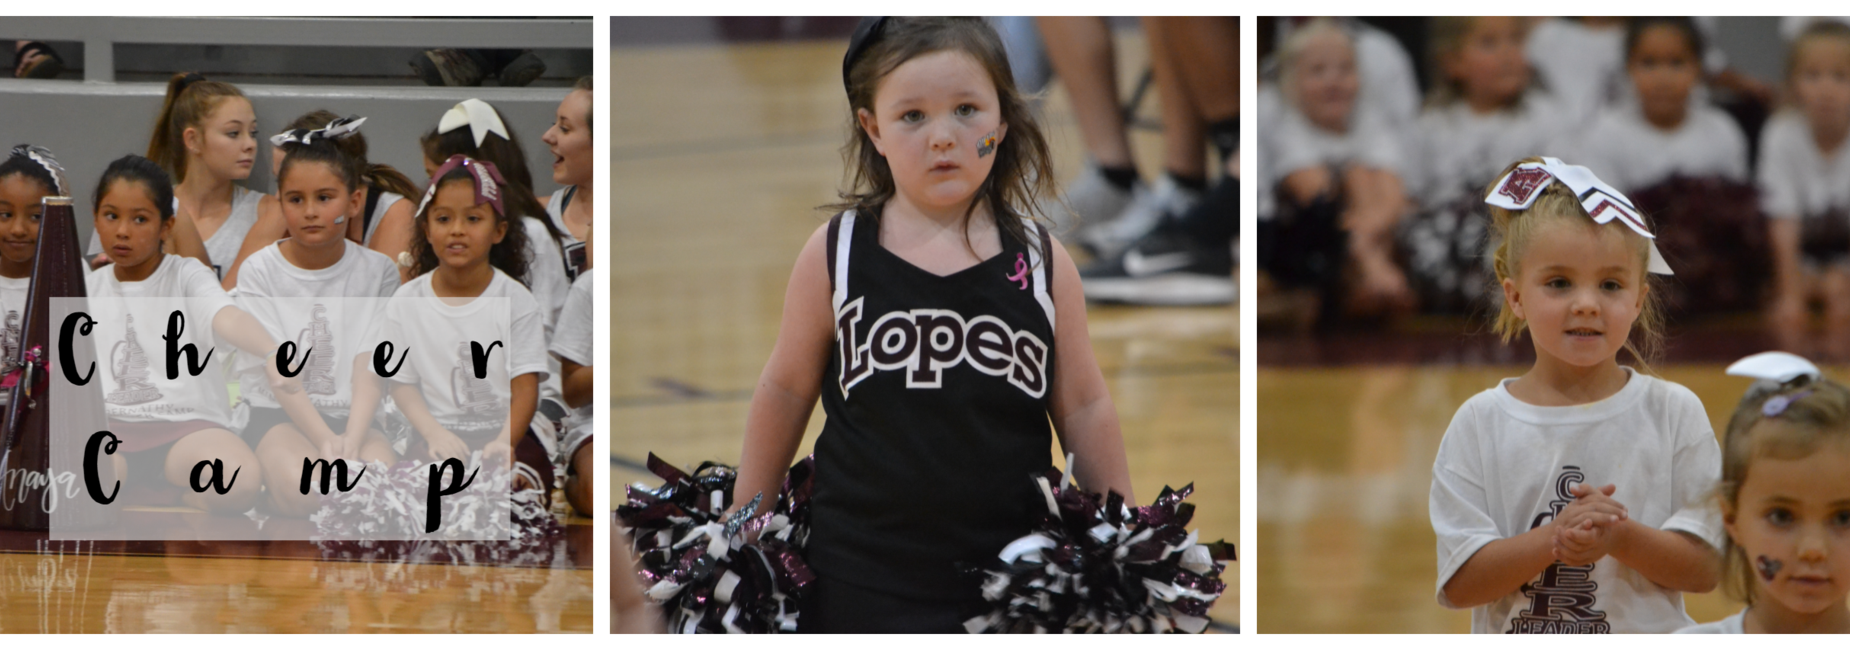 Young girls participate in cheer camp.